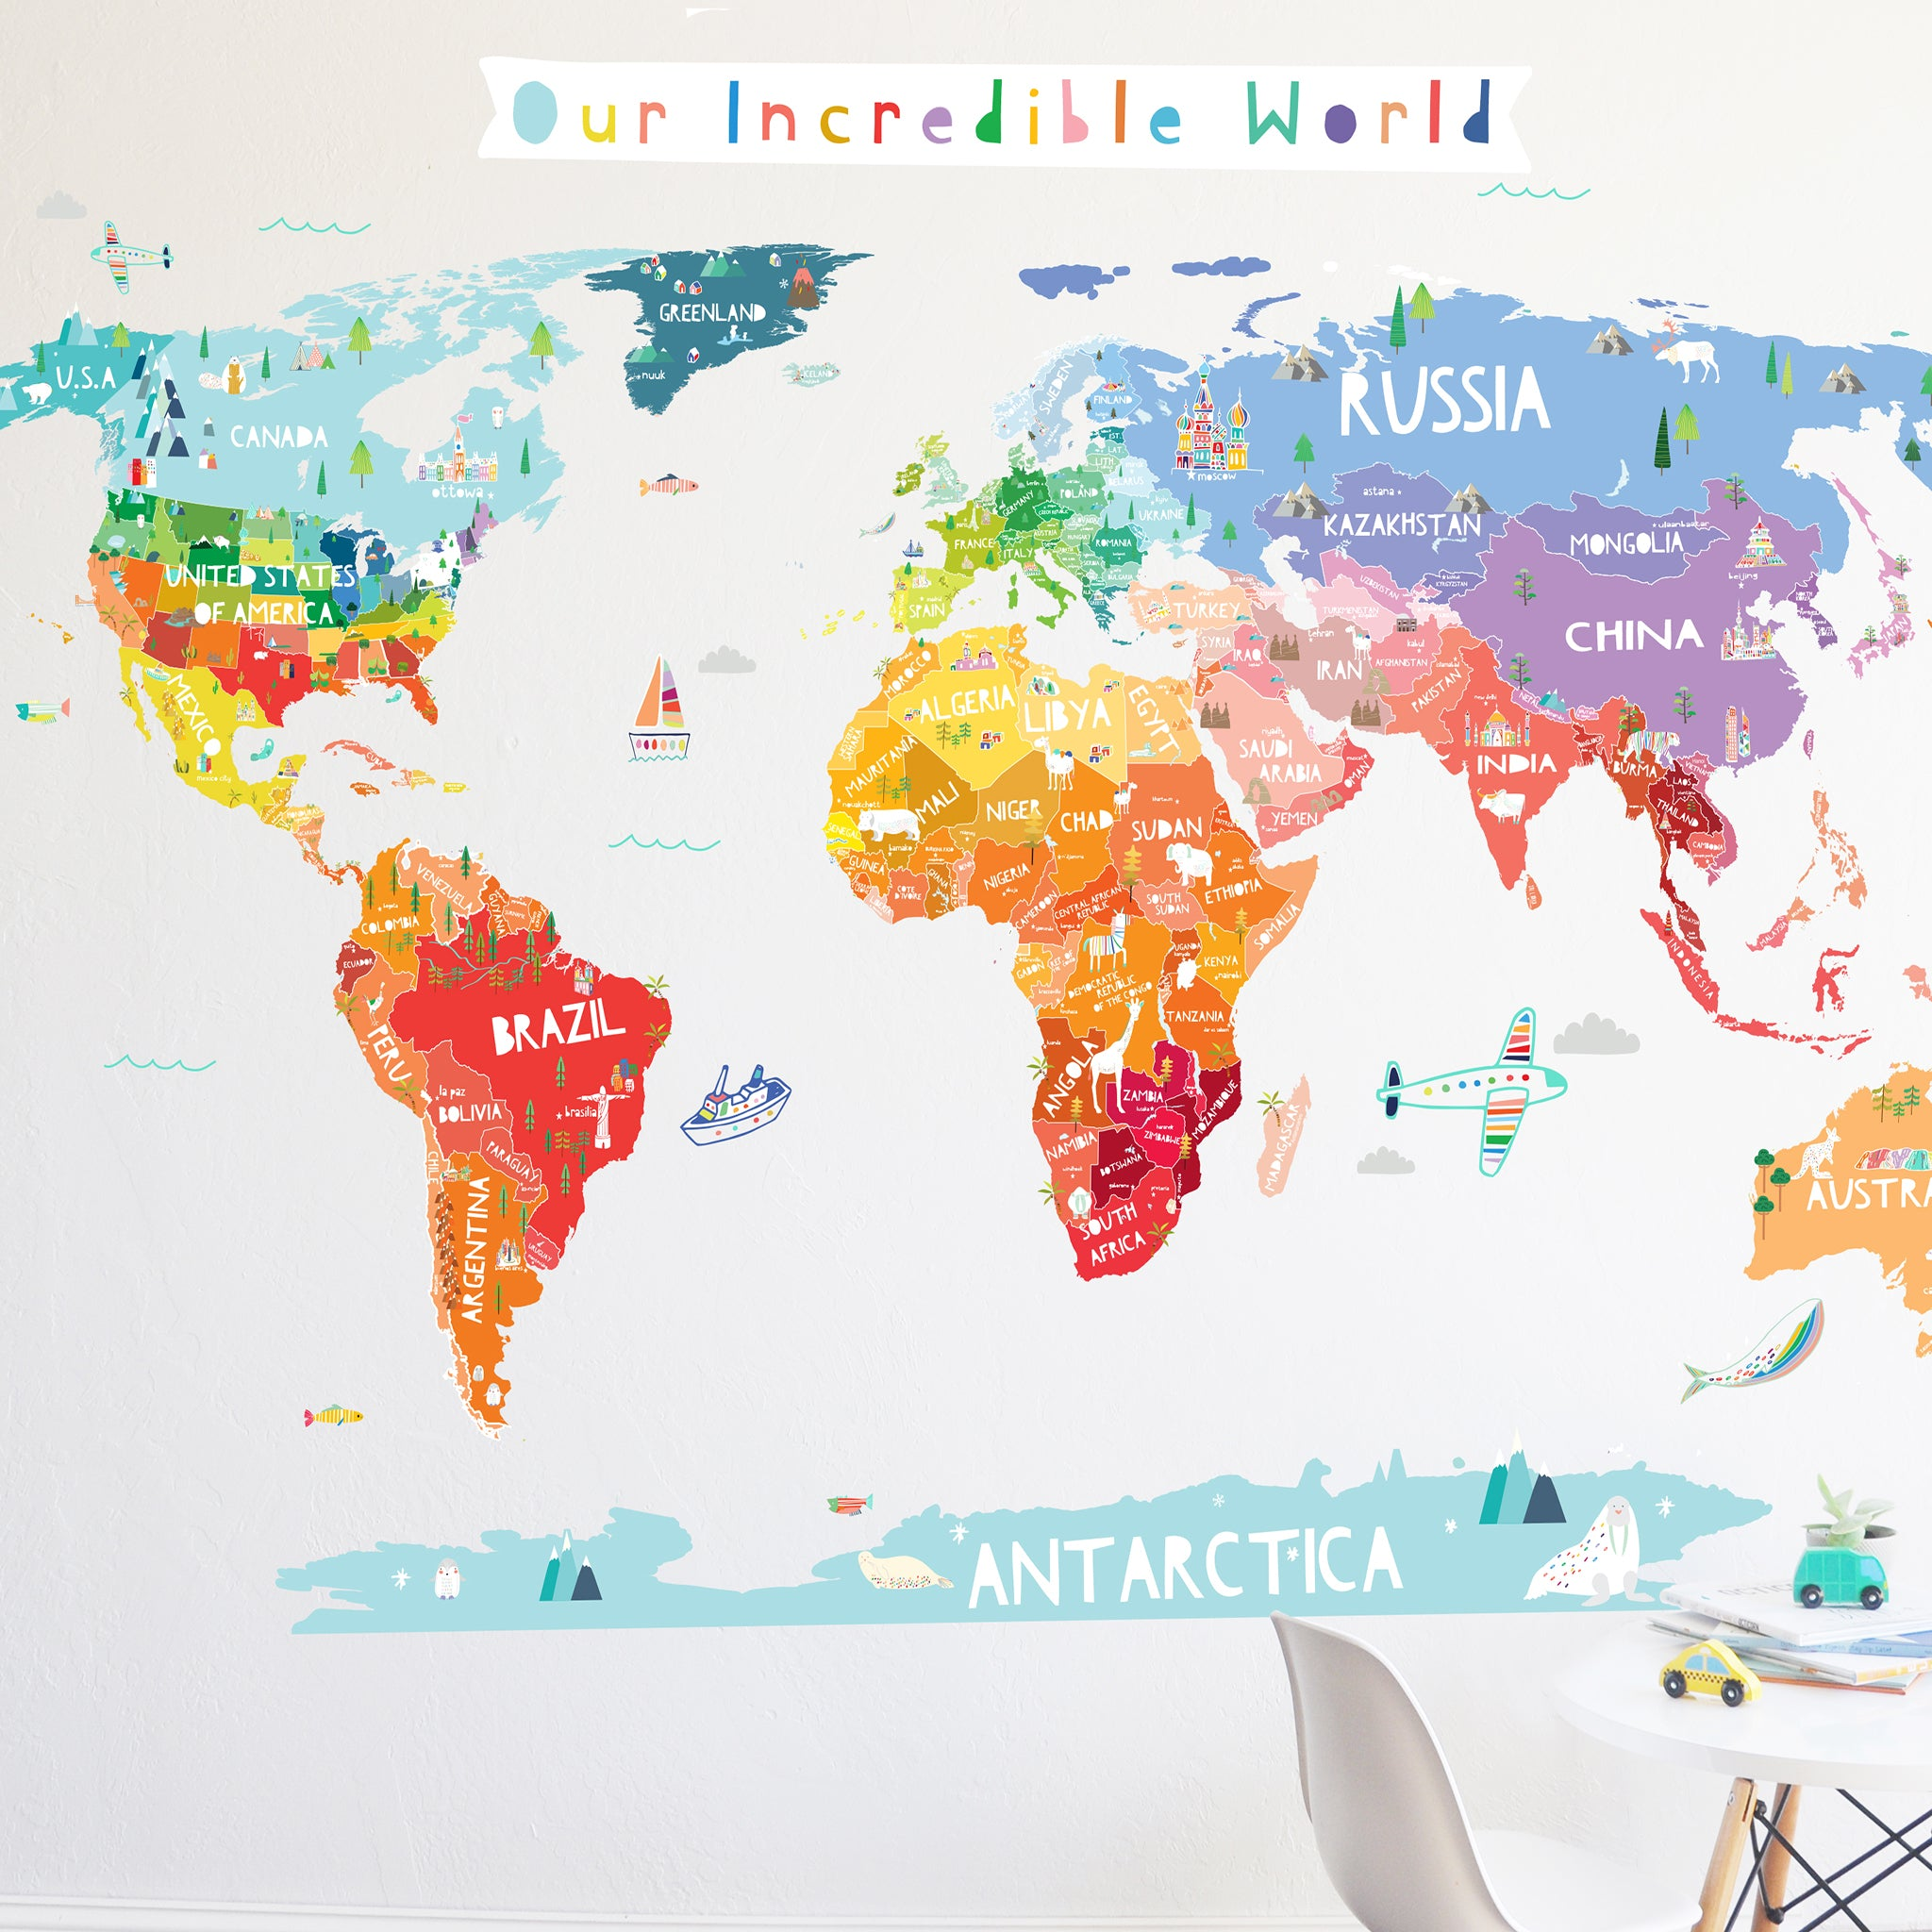 Our Incredible World Cut World Map Wall Decal with ... on grid reference, early world maps, global map, map projection, history of cartography, satellite imagery, geographic information system, geographic coordinate system, cartography of the united states, geographic feature,